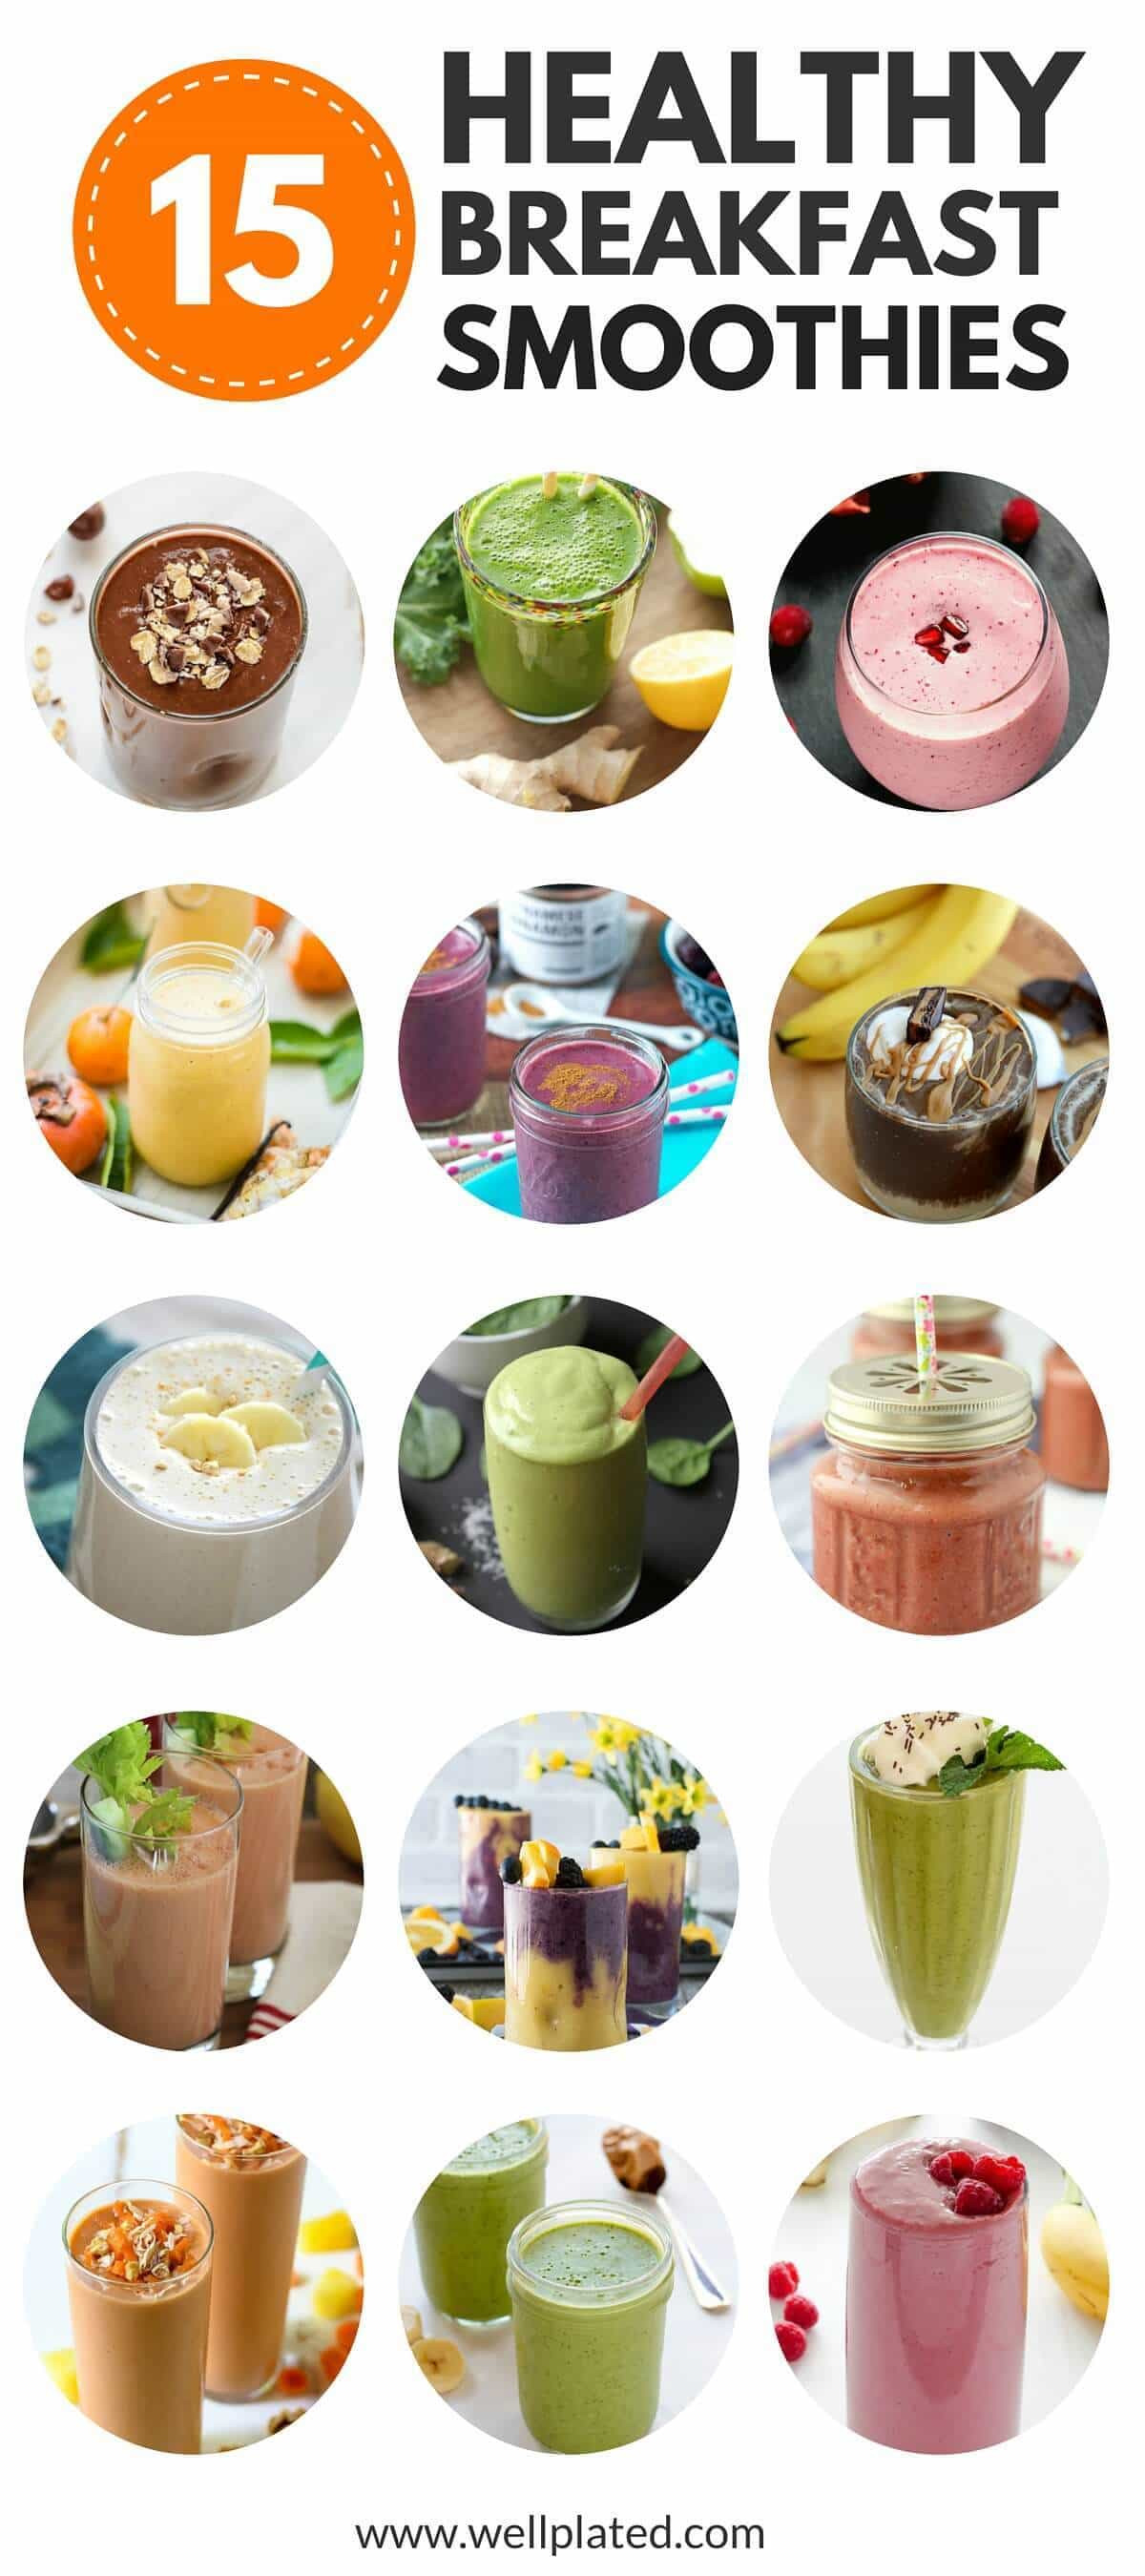 Healthy Breakfast Recipes For Weight Loss  The Best 15 Healthy Breakfast Smoothies